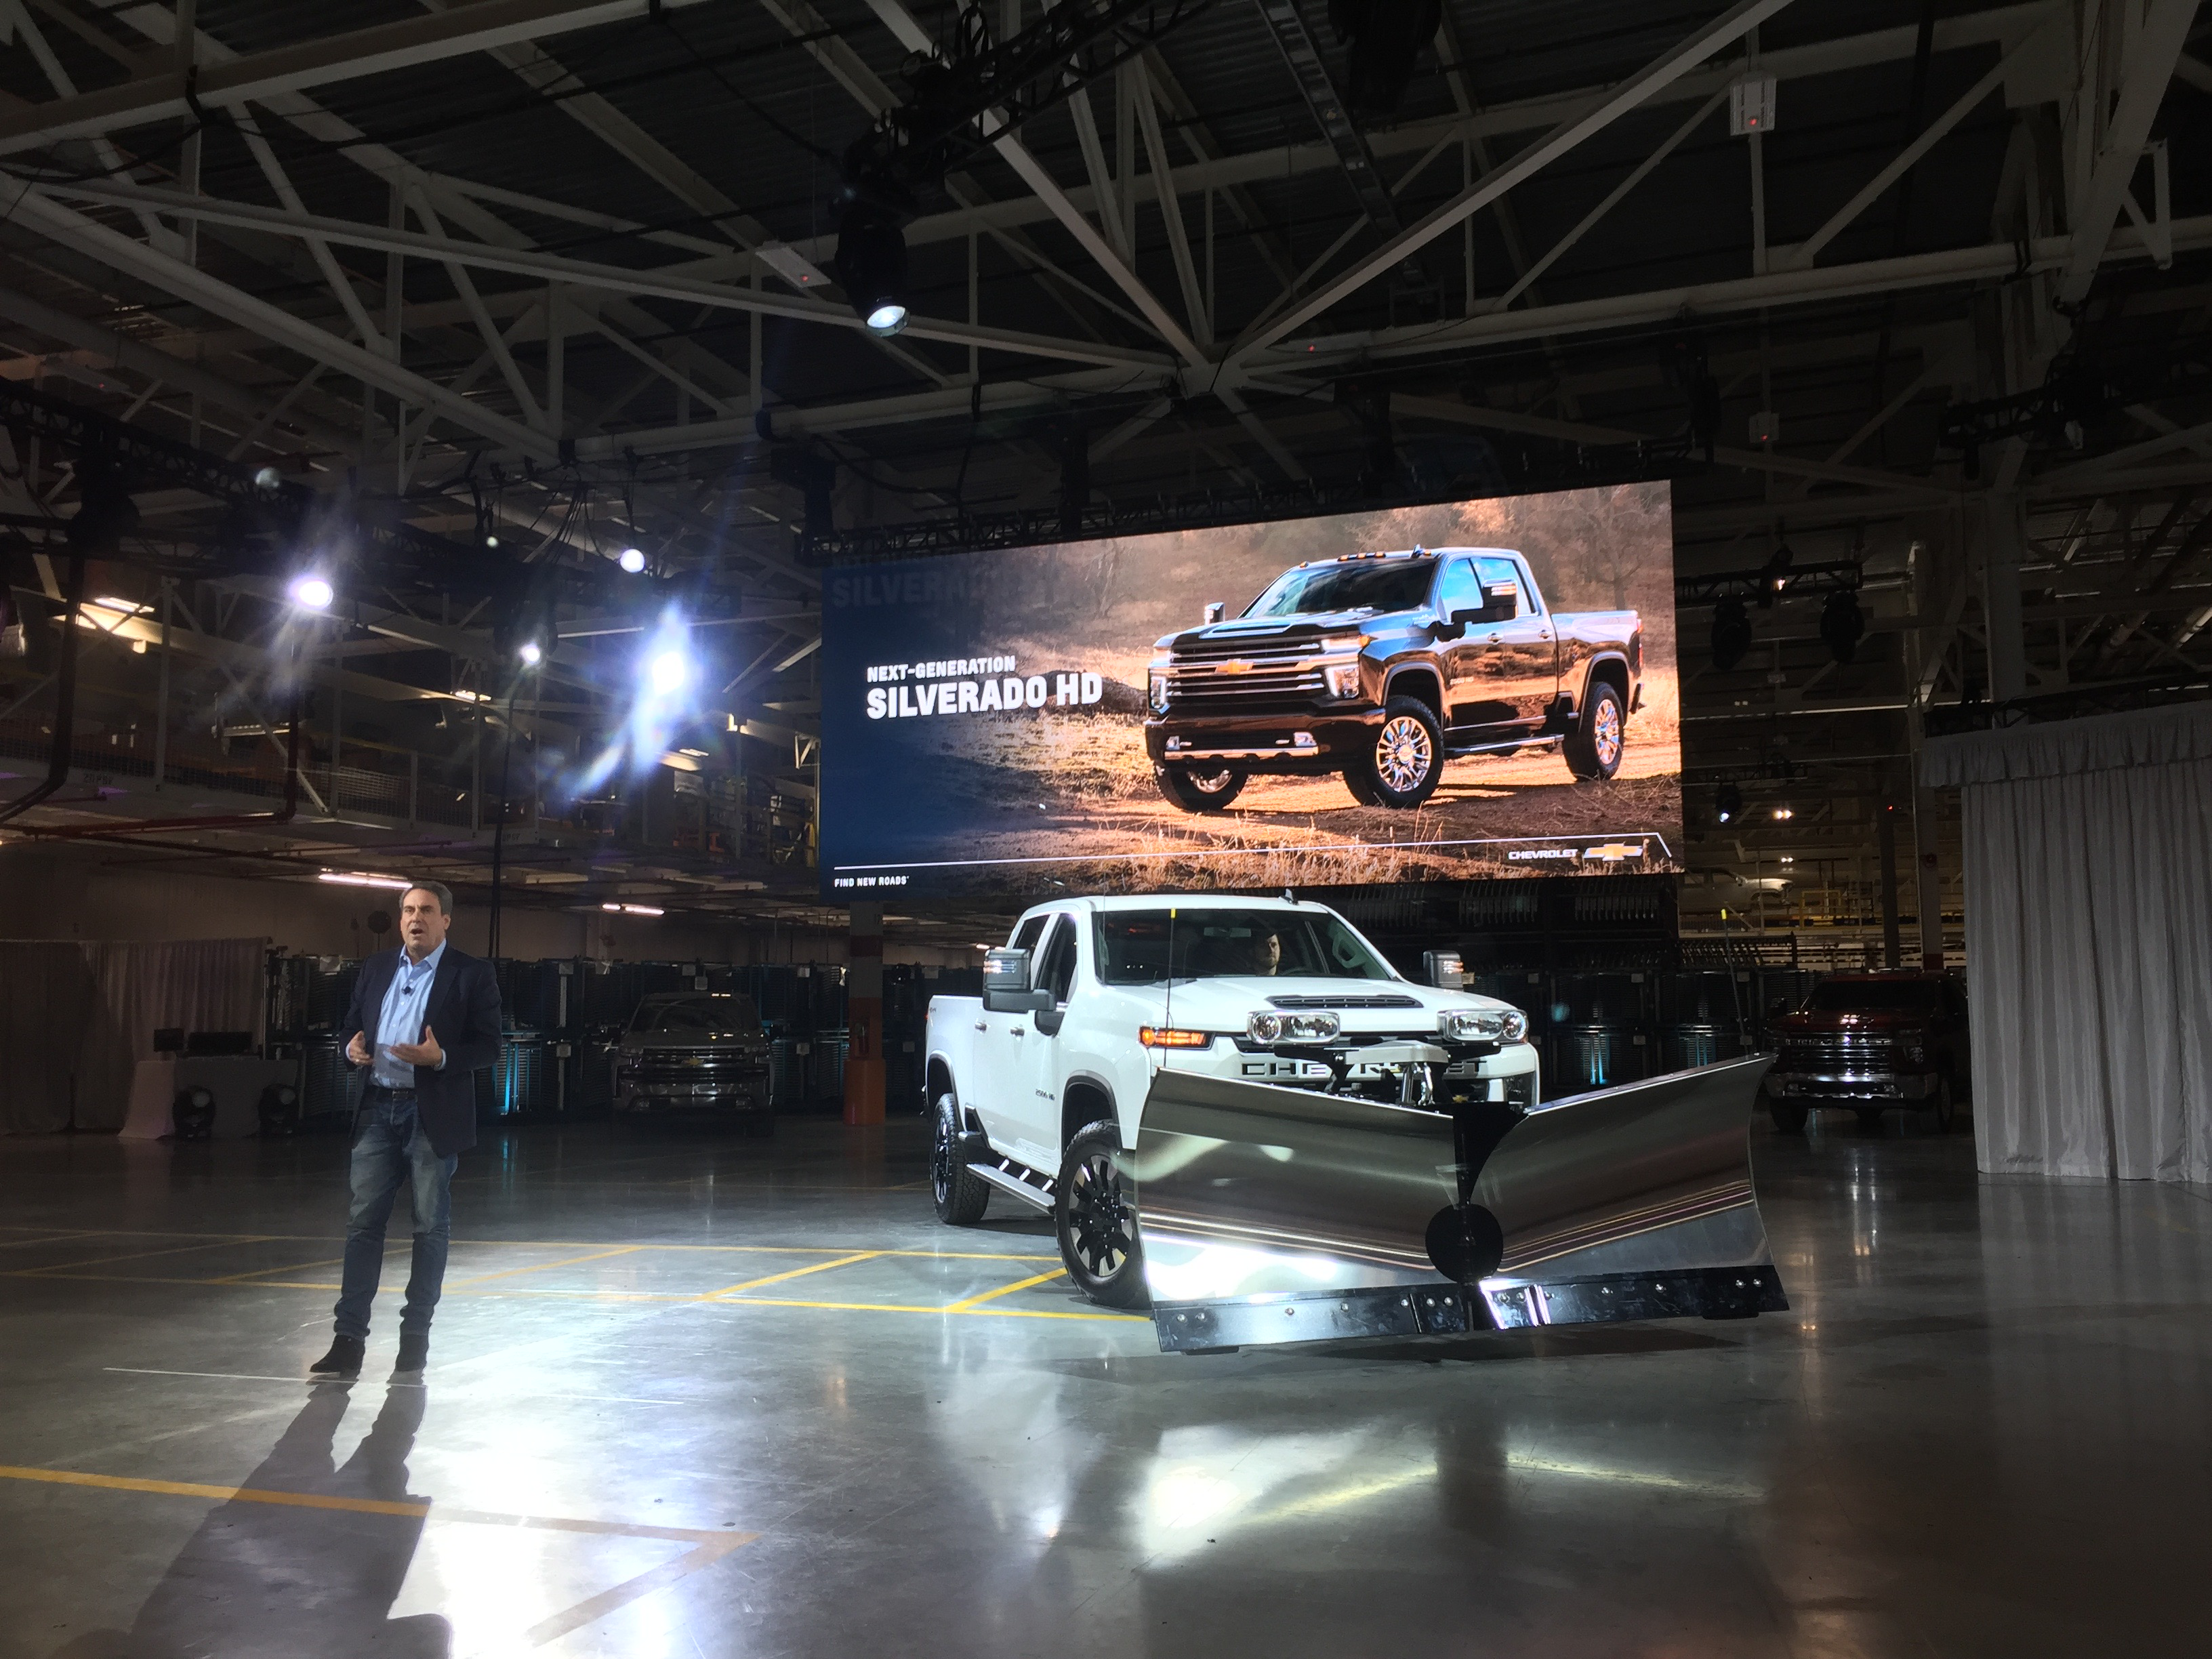 Best Arena Class 2020 2020 Silverado HD revealed with best in class towing, new gas V8